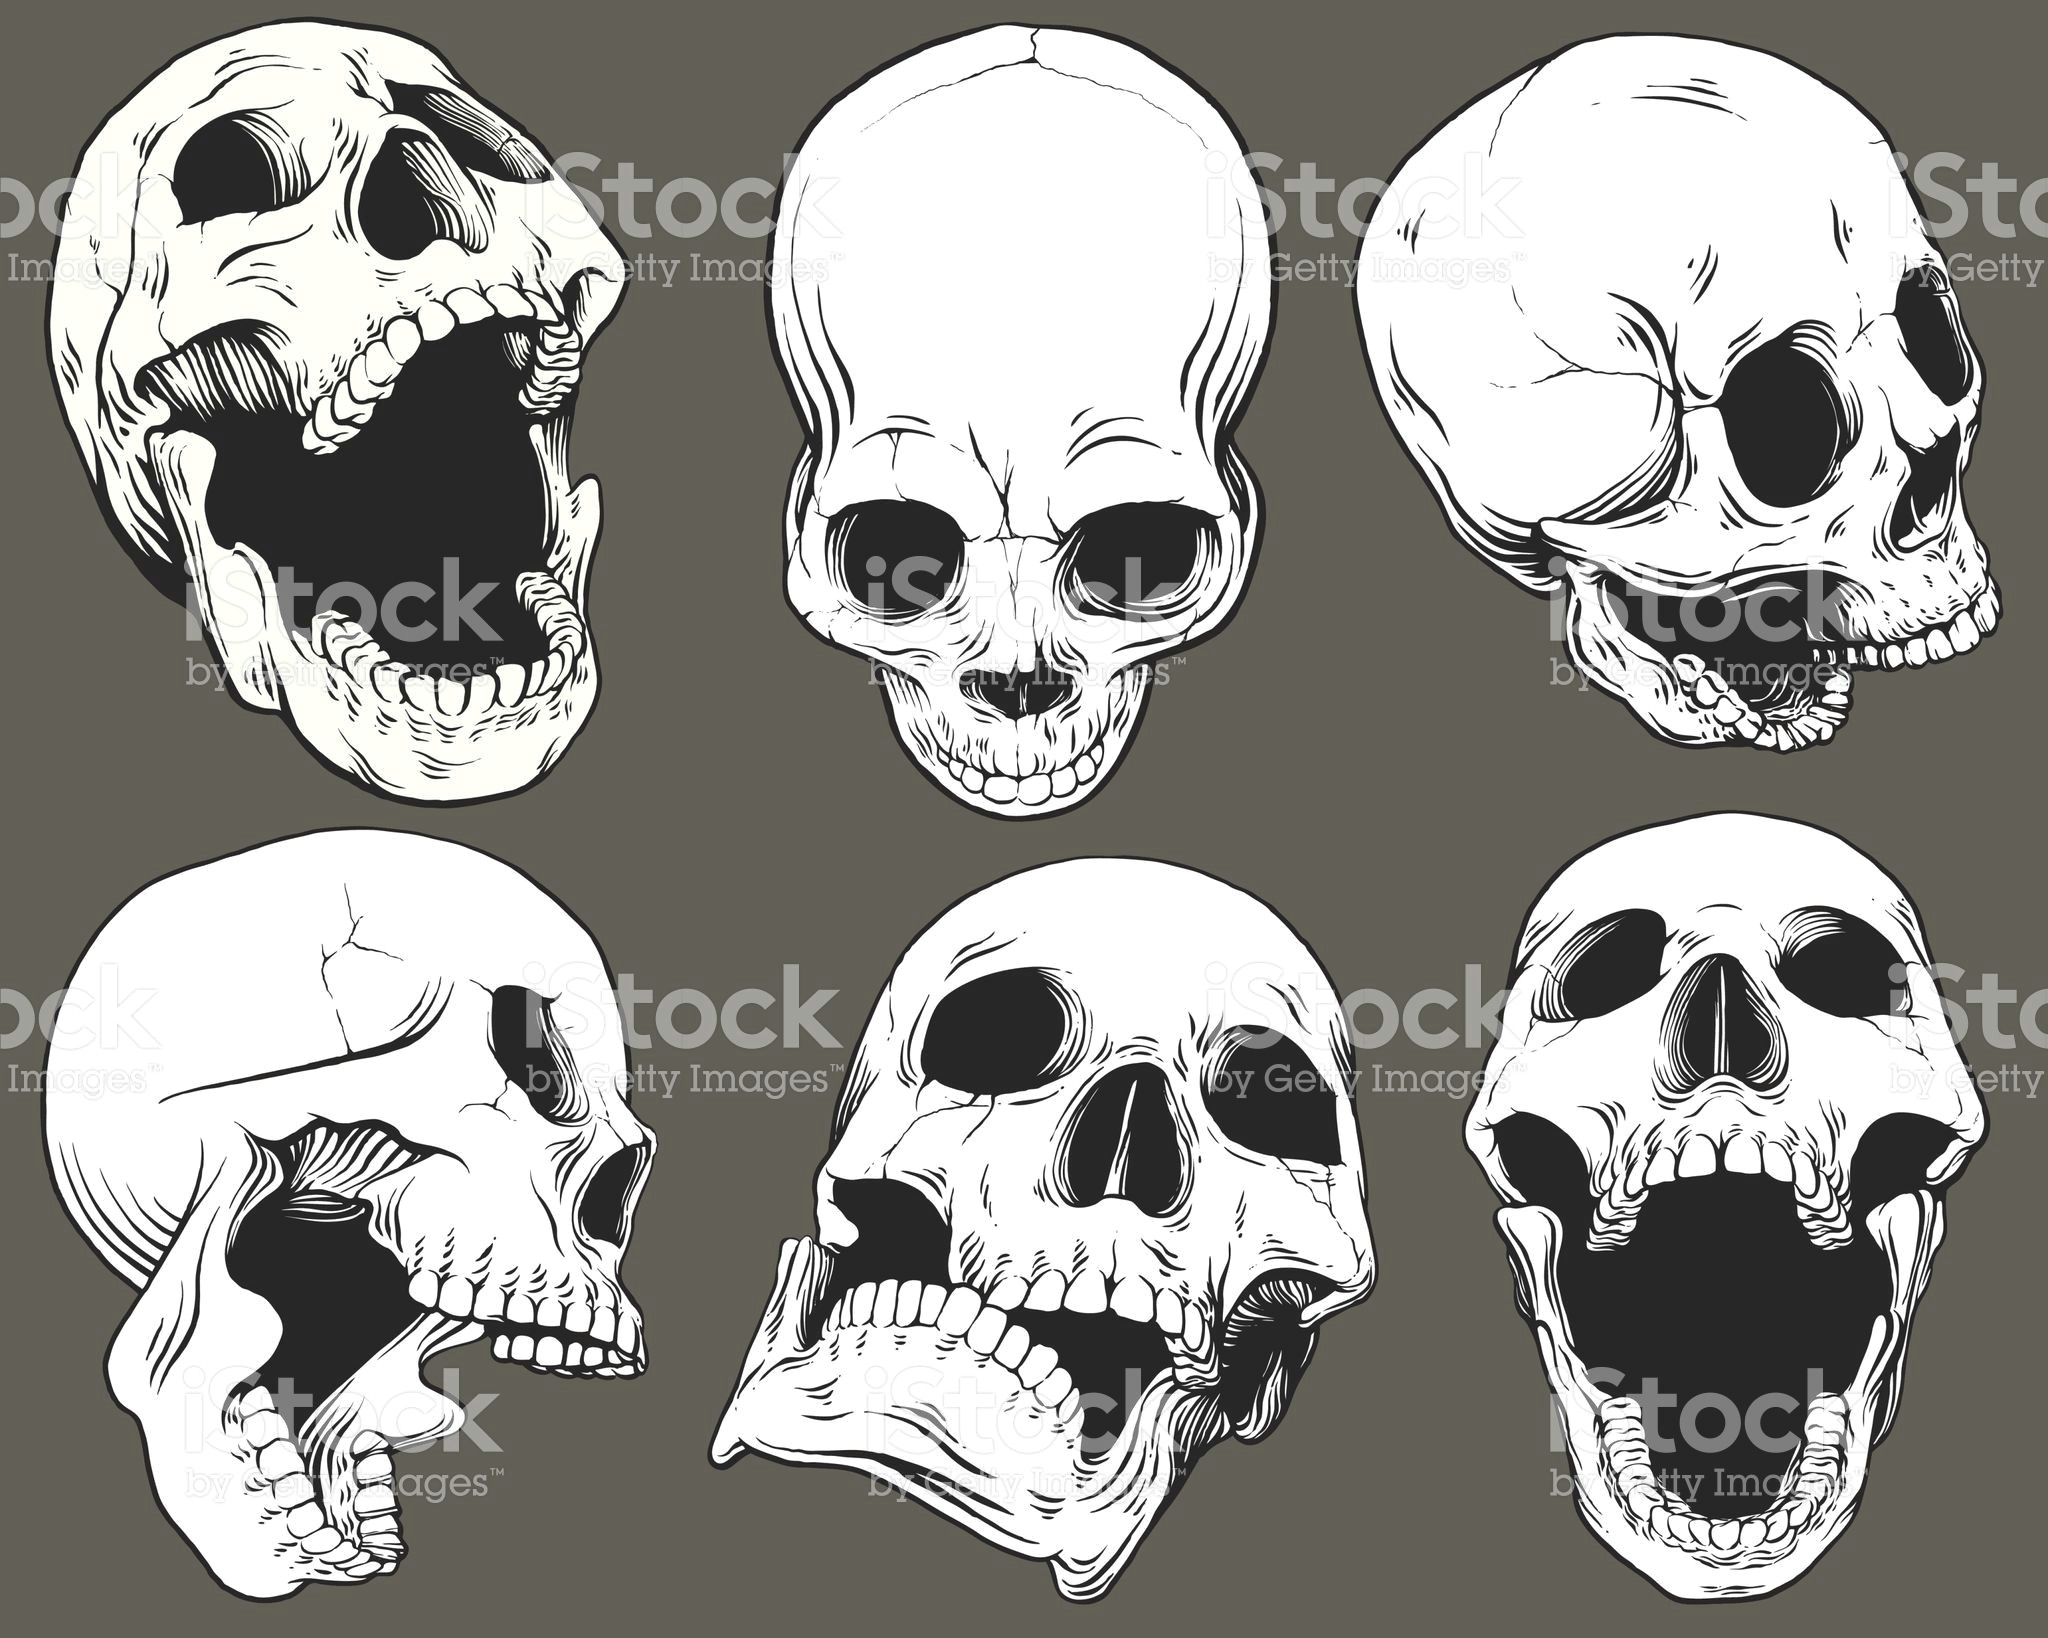 a a a a a a a a a a a a a a a a a a a a a a a aa a a a aa a a a c a a c ae skull reference anatomy reference